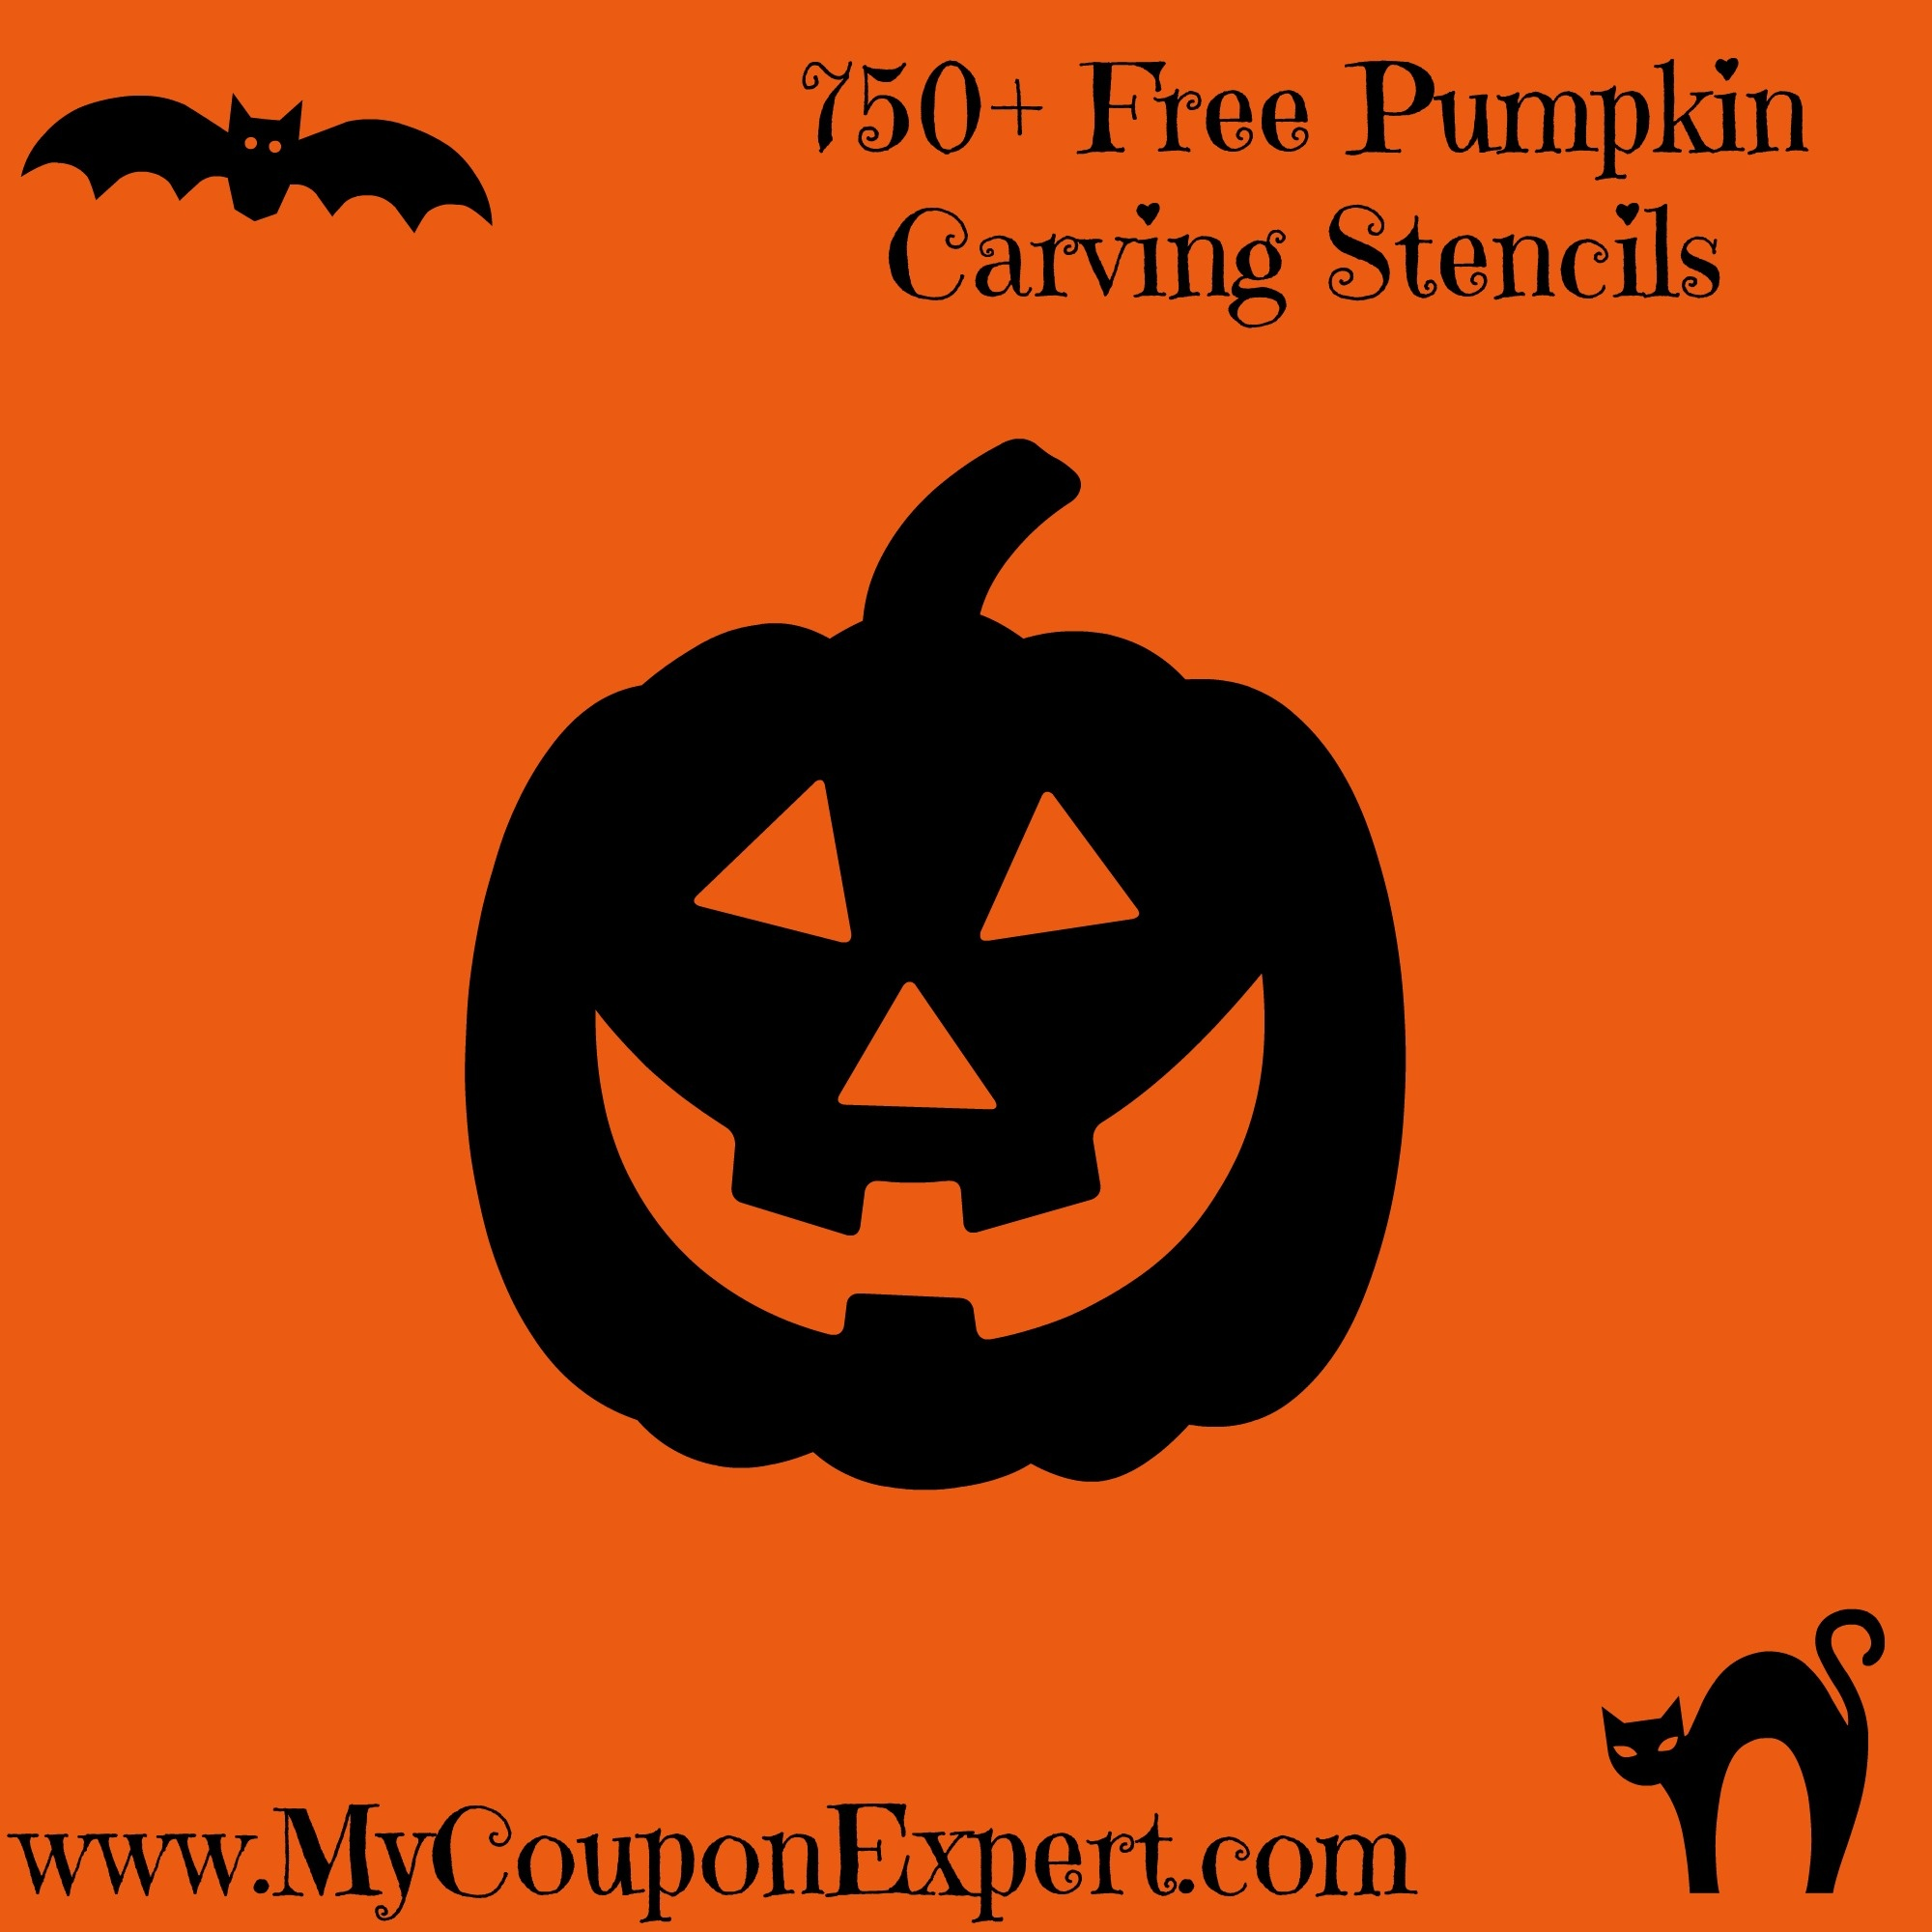 750+ Free Pumpkin Carving Stencils · - Halloween Pumpkin Carving Stencils Free Printable